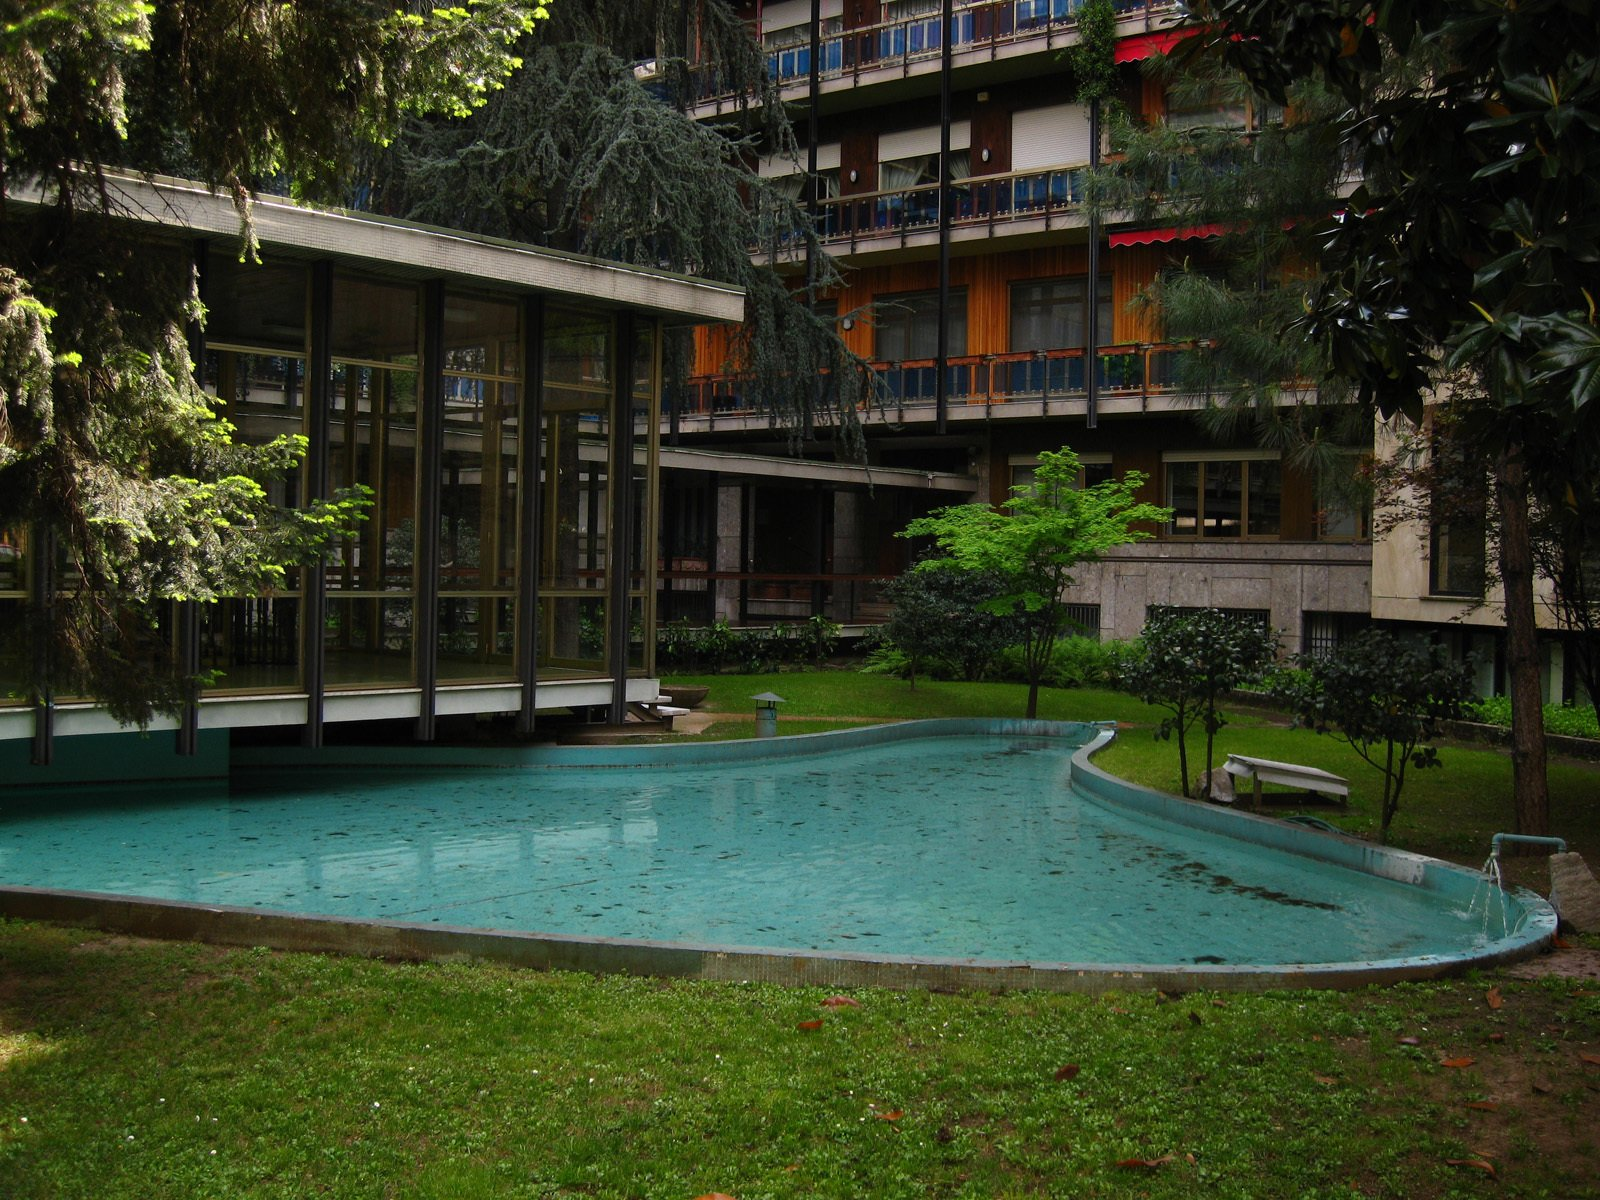 More of a reflecting pool than a swimming pool, the organic shape of this kidney-shaped pool contrasts with the otherwise rectilinear forms at this Modernist apartment building in Milan.  Photo 8 of 11 in The Rise of the Kidney-Shaped Pool—and its Unexpected Impact on Skate Culture from Spazzio Rossana Orlandi